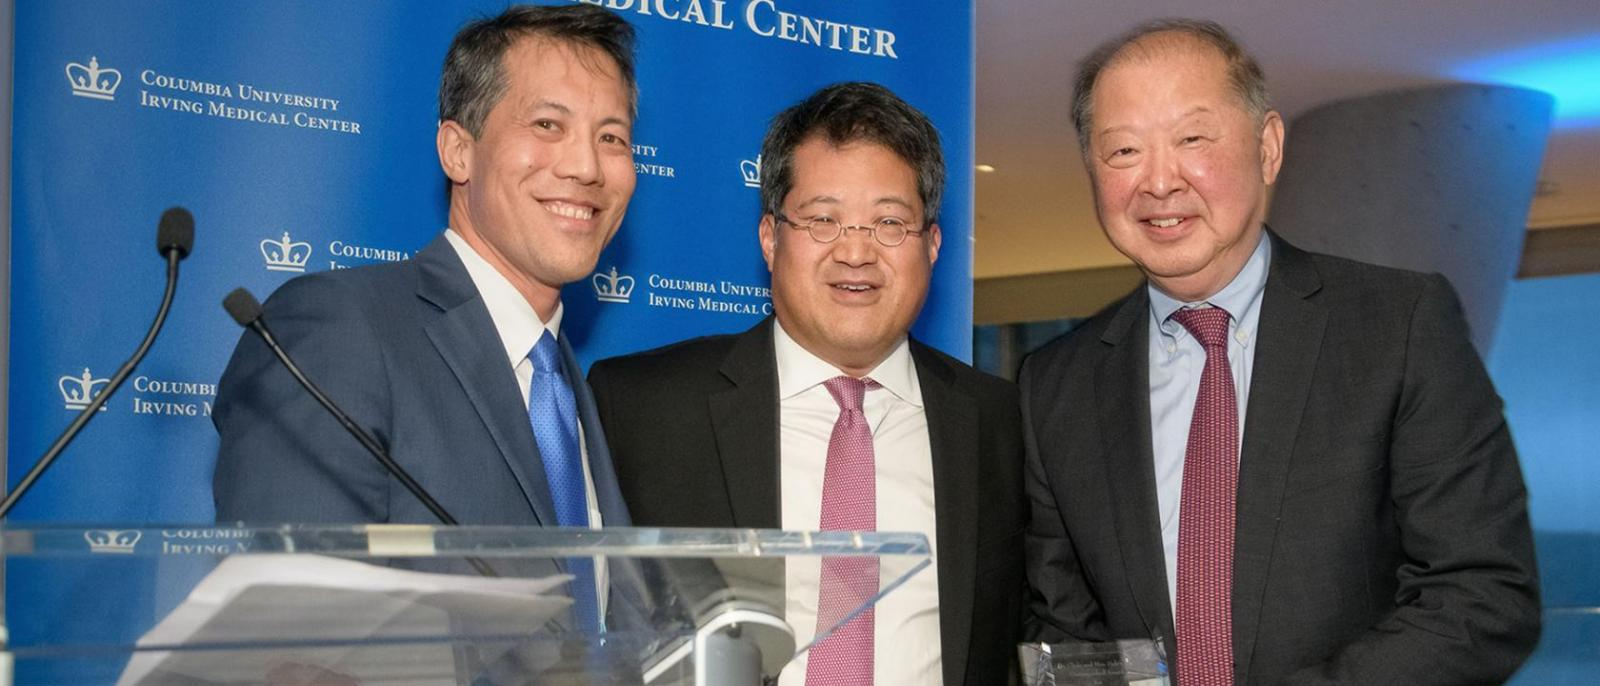 David Wu, MD, and Roger Wu, MD, awarded Stanley Chang, MD, the Dr. Clyde and Helen Wu Award for International Understanding at the 2018 Symposium